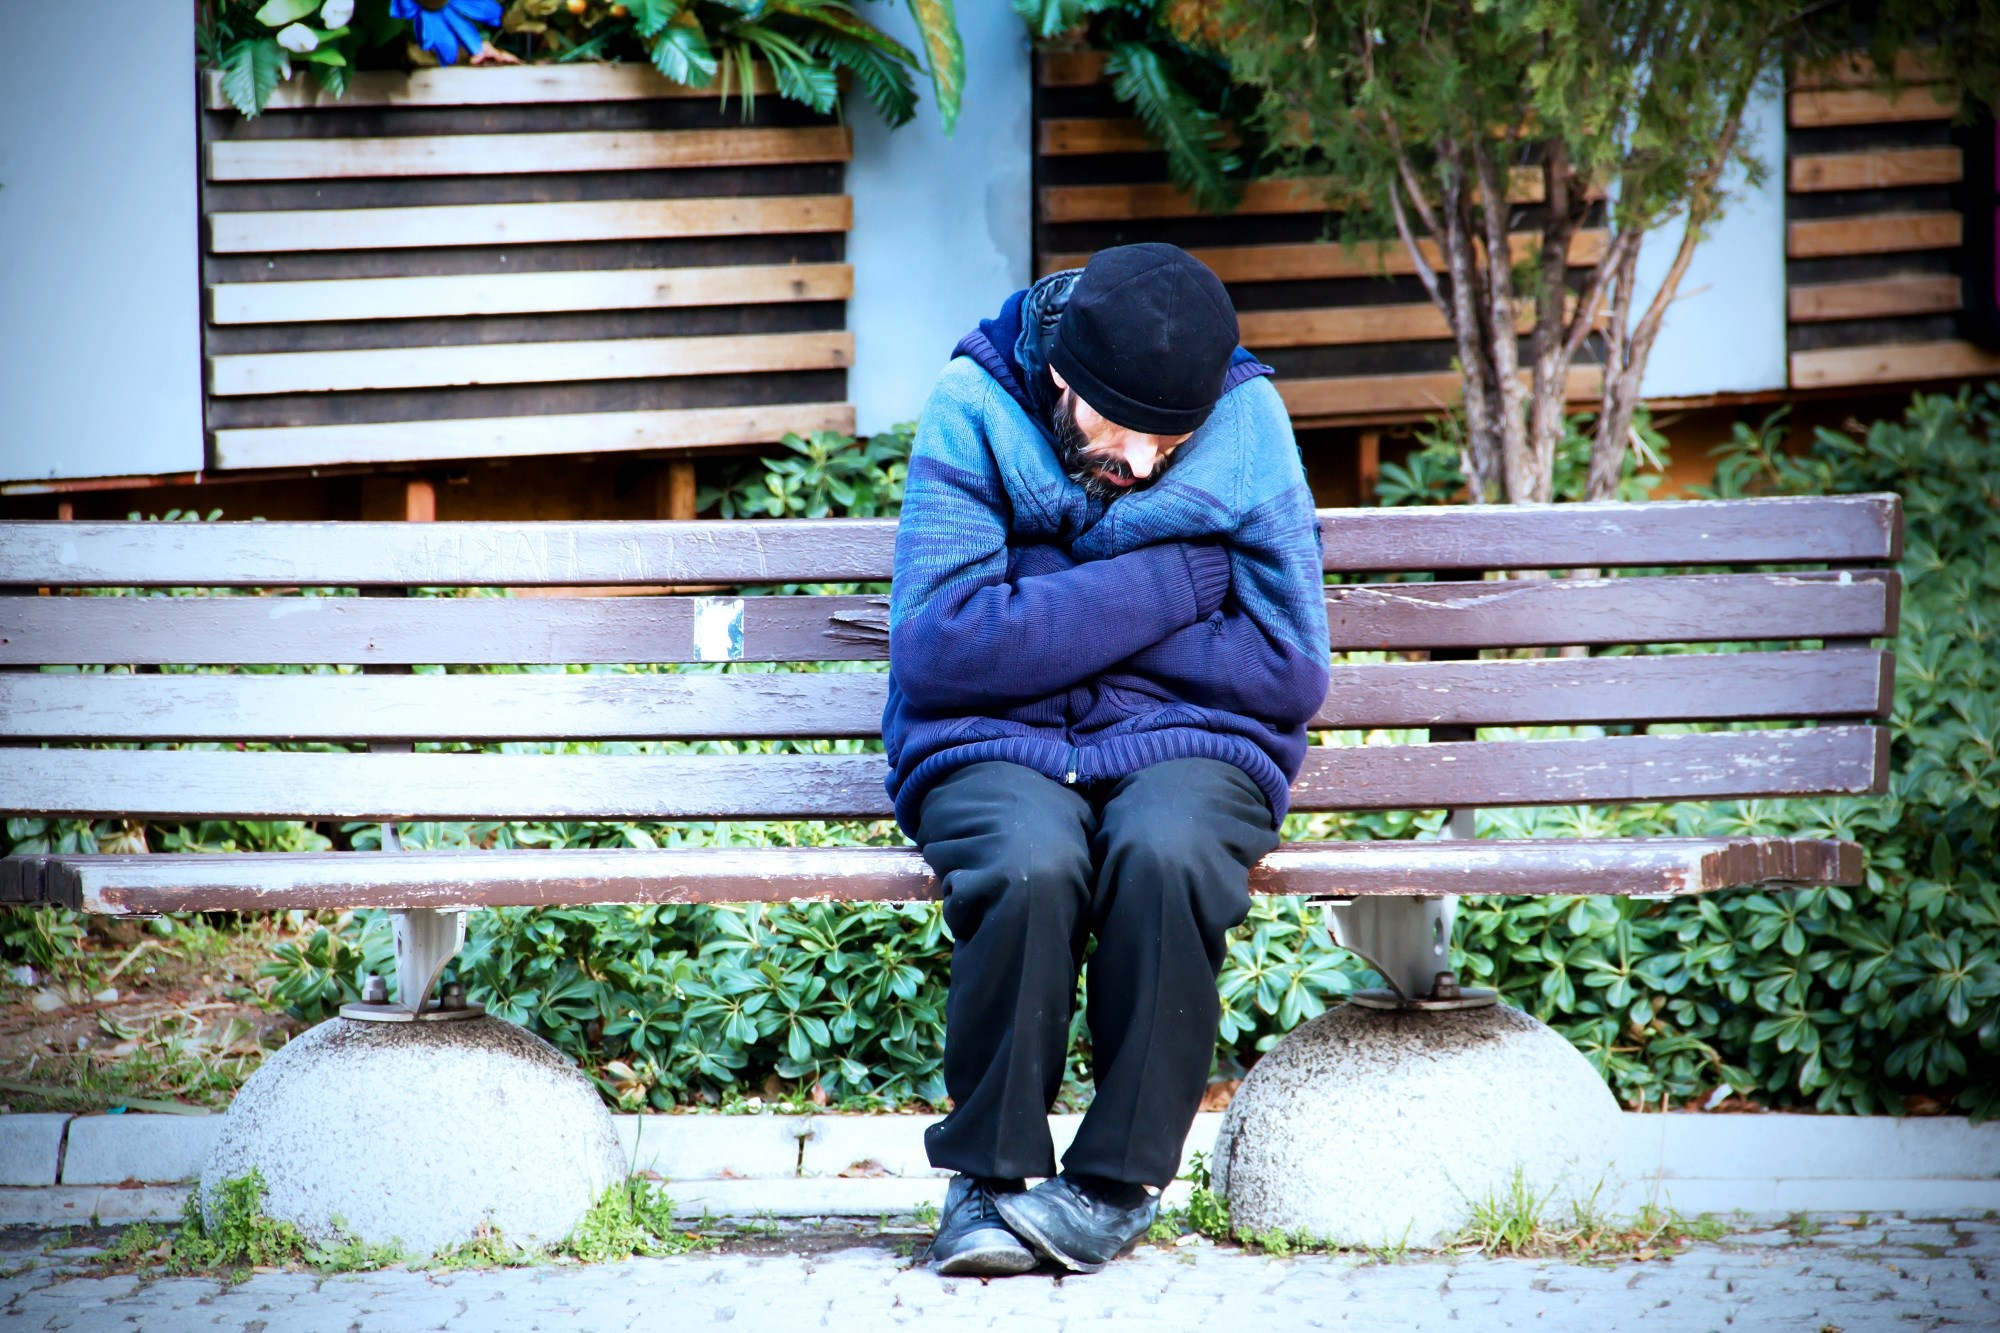 Hospitalizations Increase for Homeless From 2007 to 2013